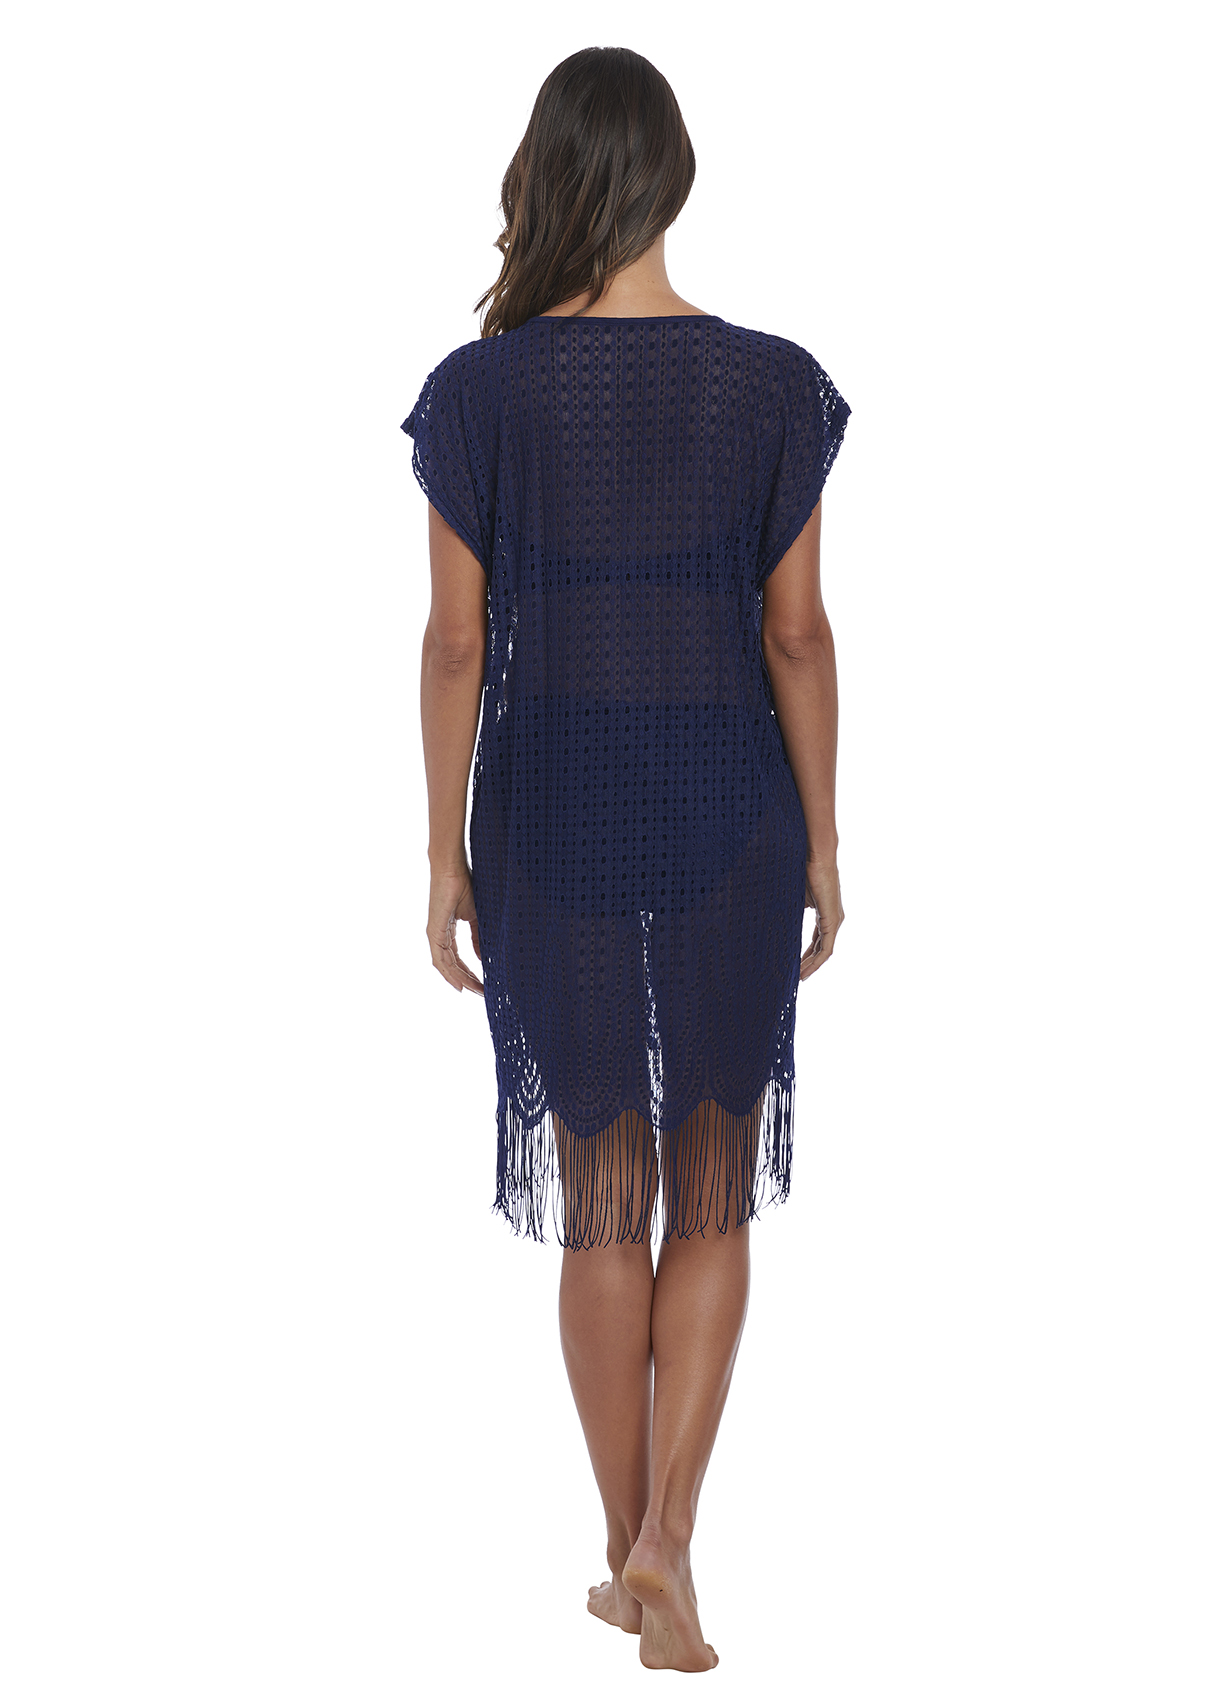 Fantasie Antheia Twilight dress